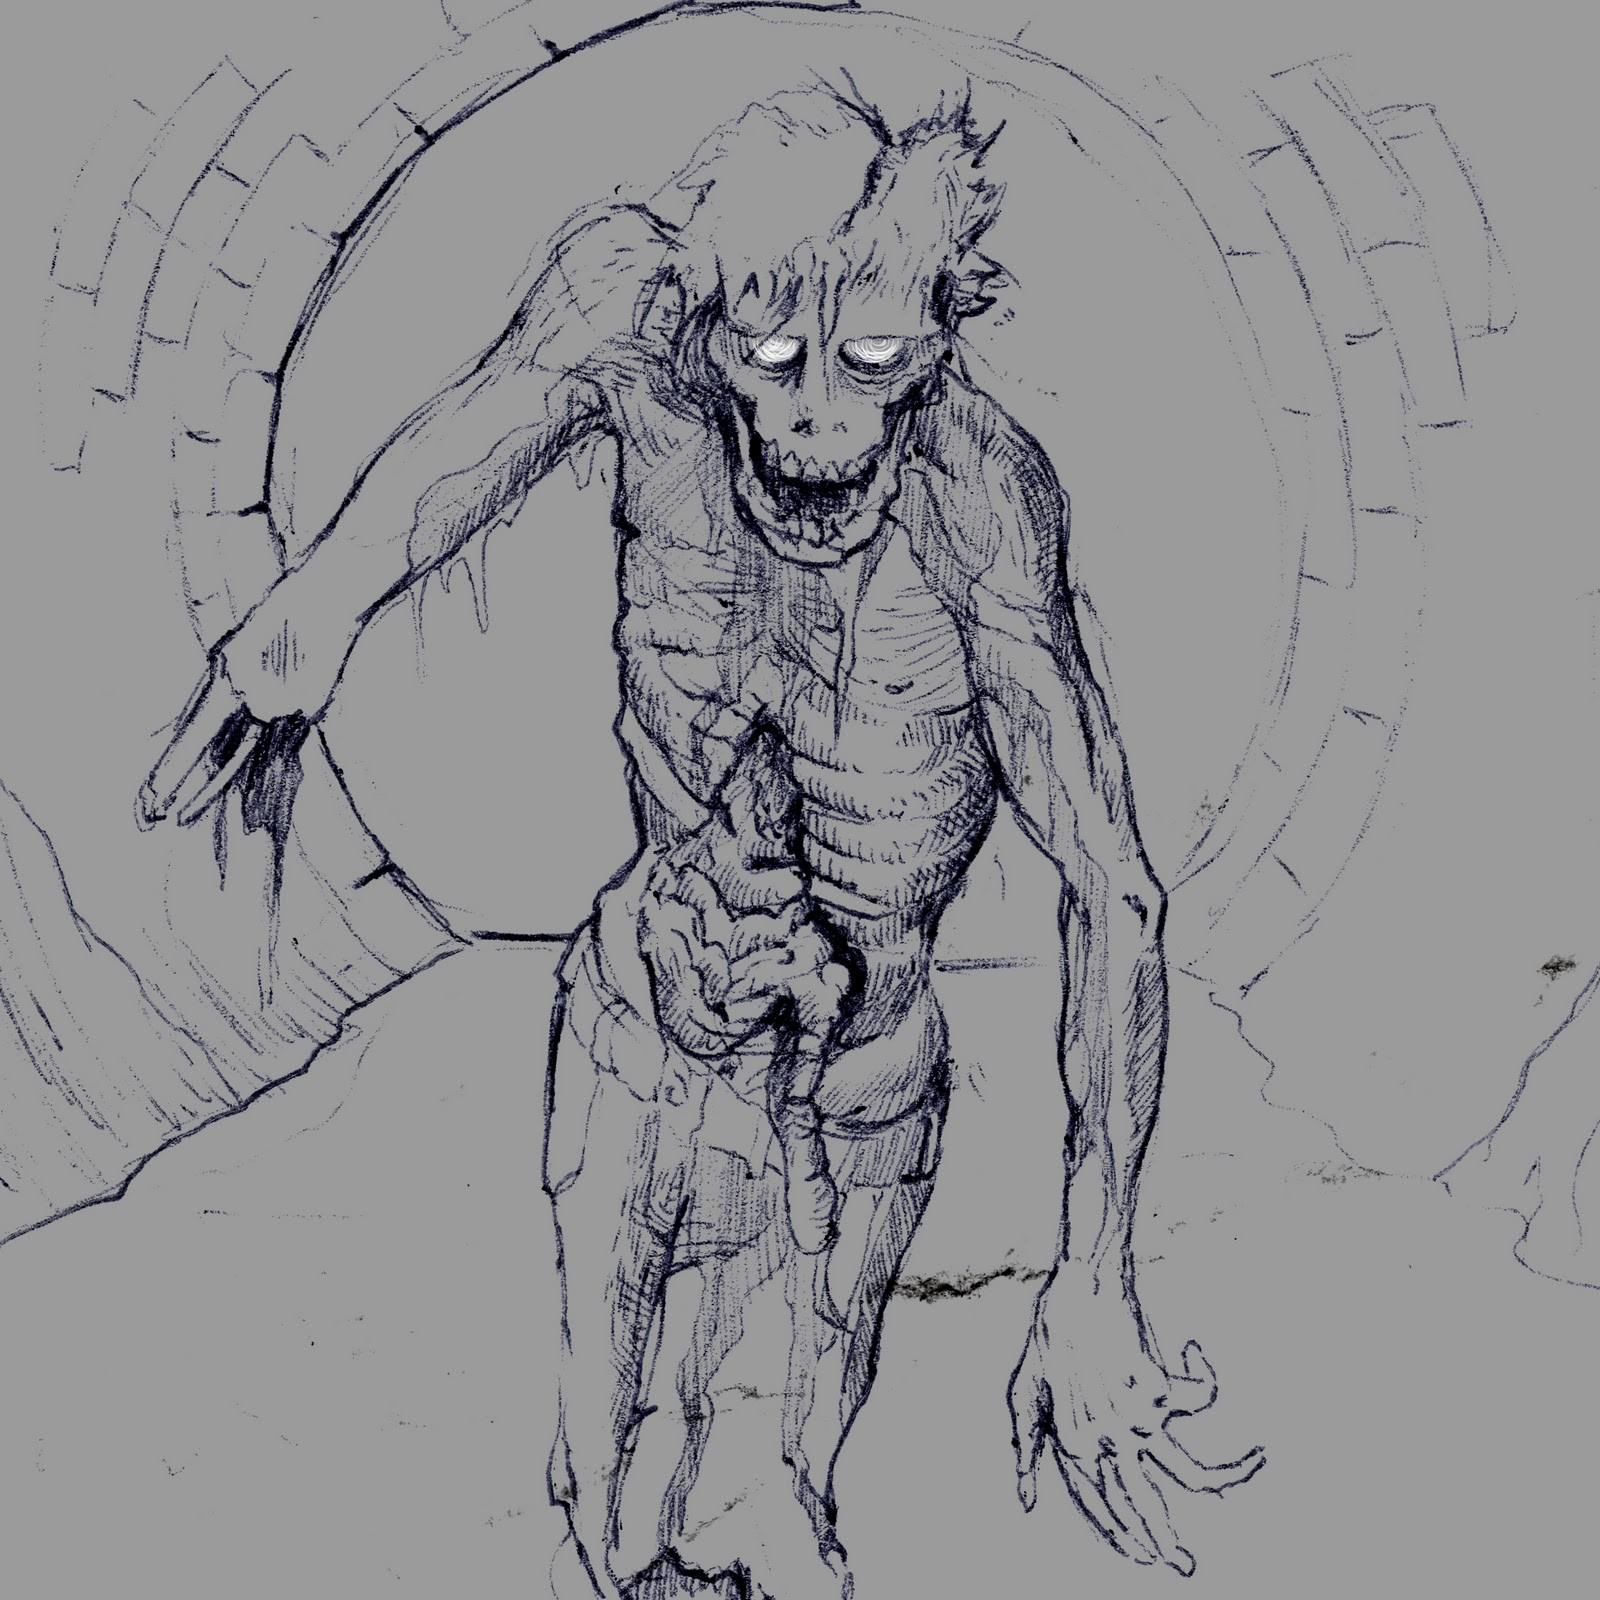 Wasted Talents: Zombie doodle